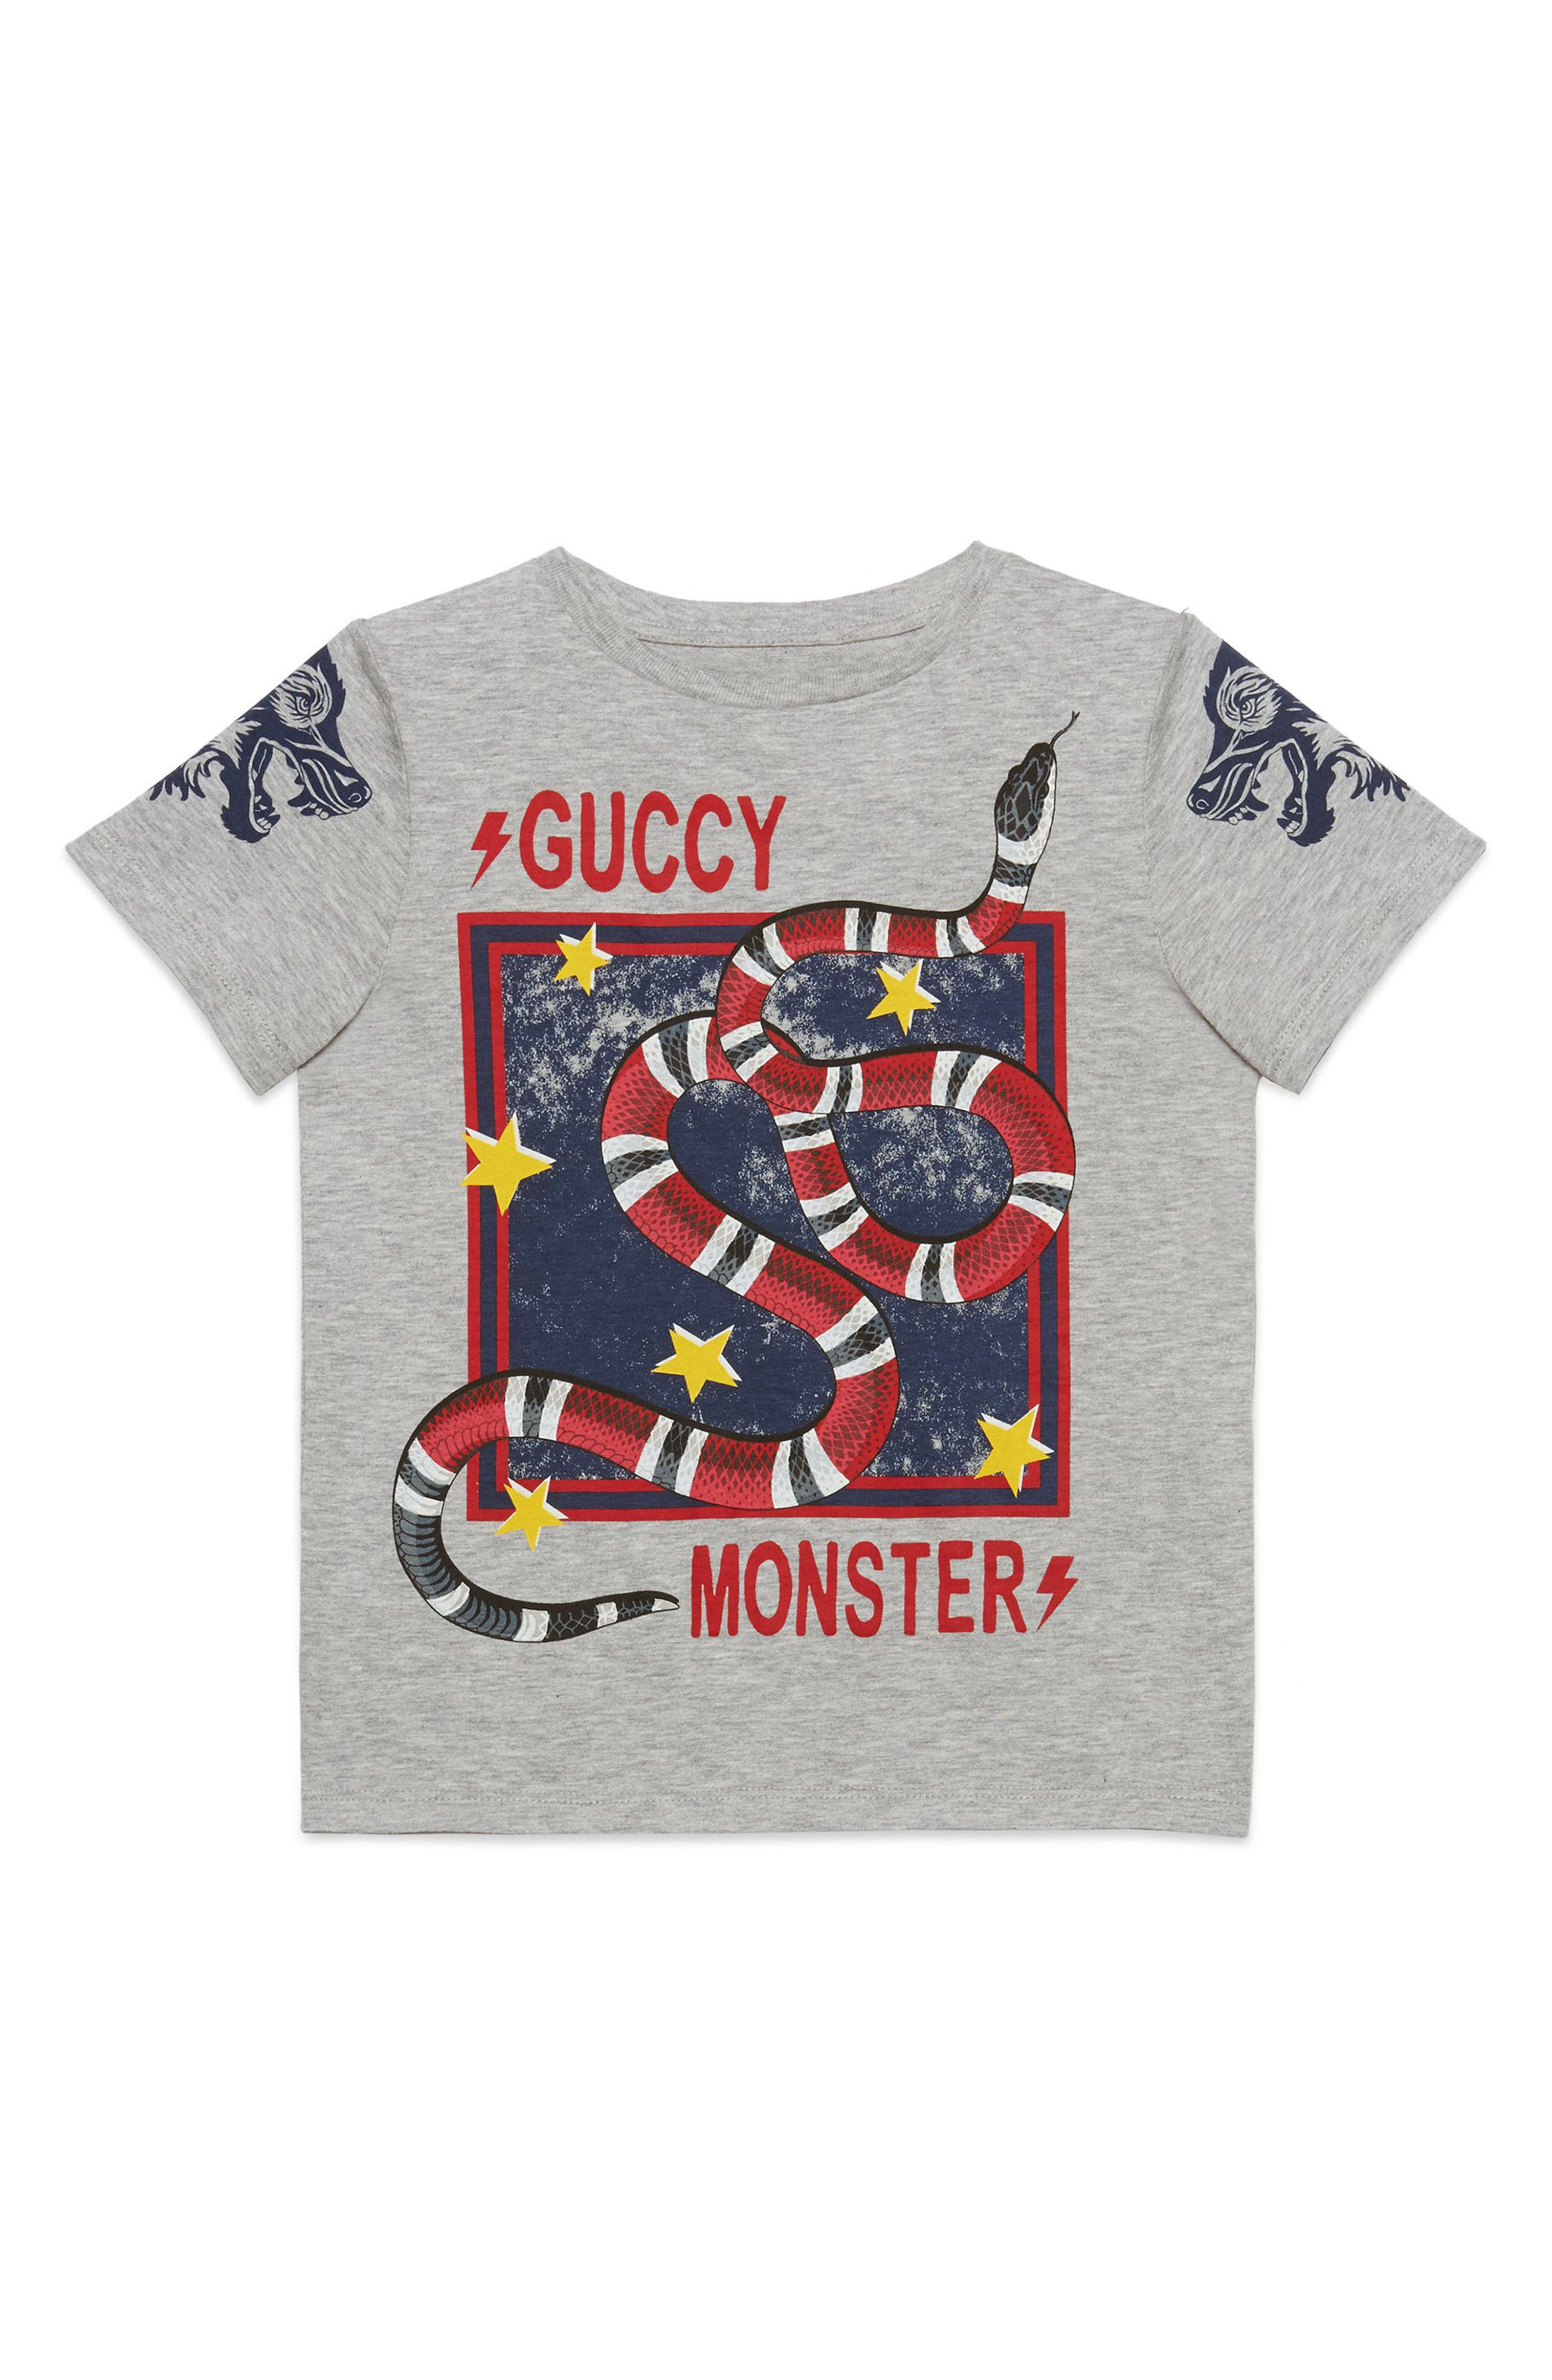 GUCCI Guccy Monster & King Snake Graphic T-Shirt, Main, color, 020